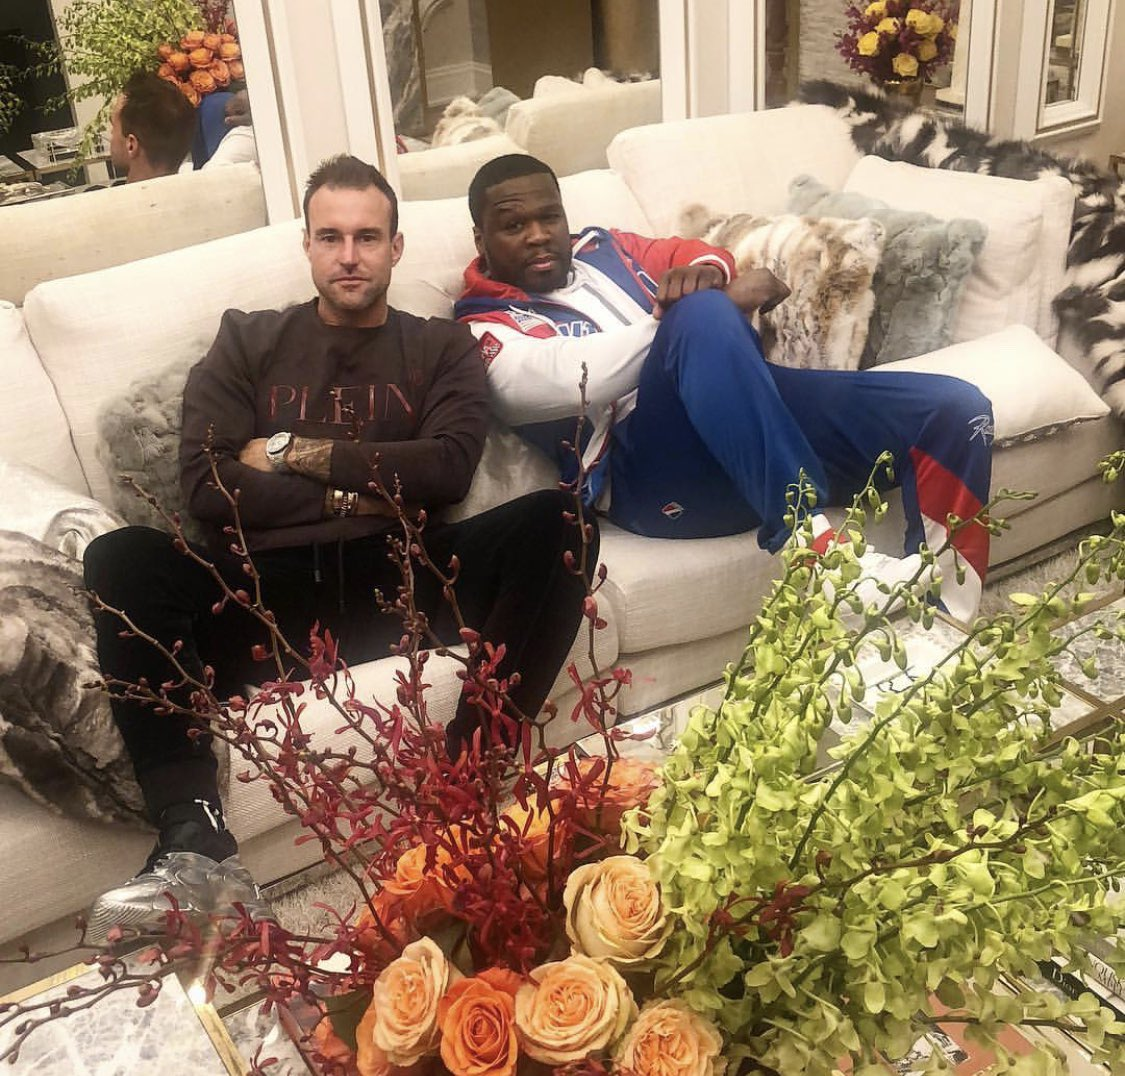 I stopped by to see my Boy @philipp_plein crib today. His new line is wavy #bransoncognac #lecheminduroi https://t.co/lDK7LV3ger